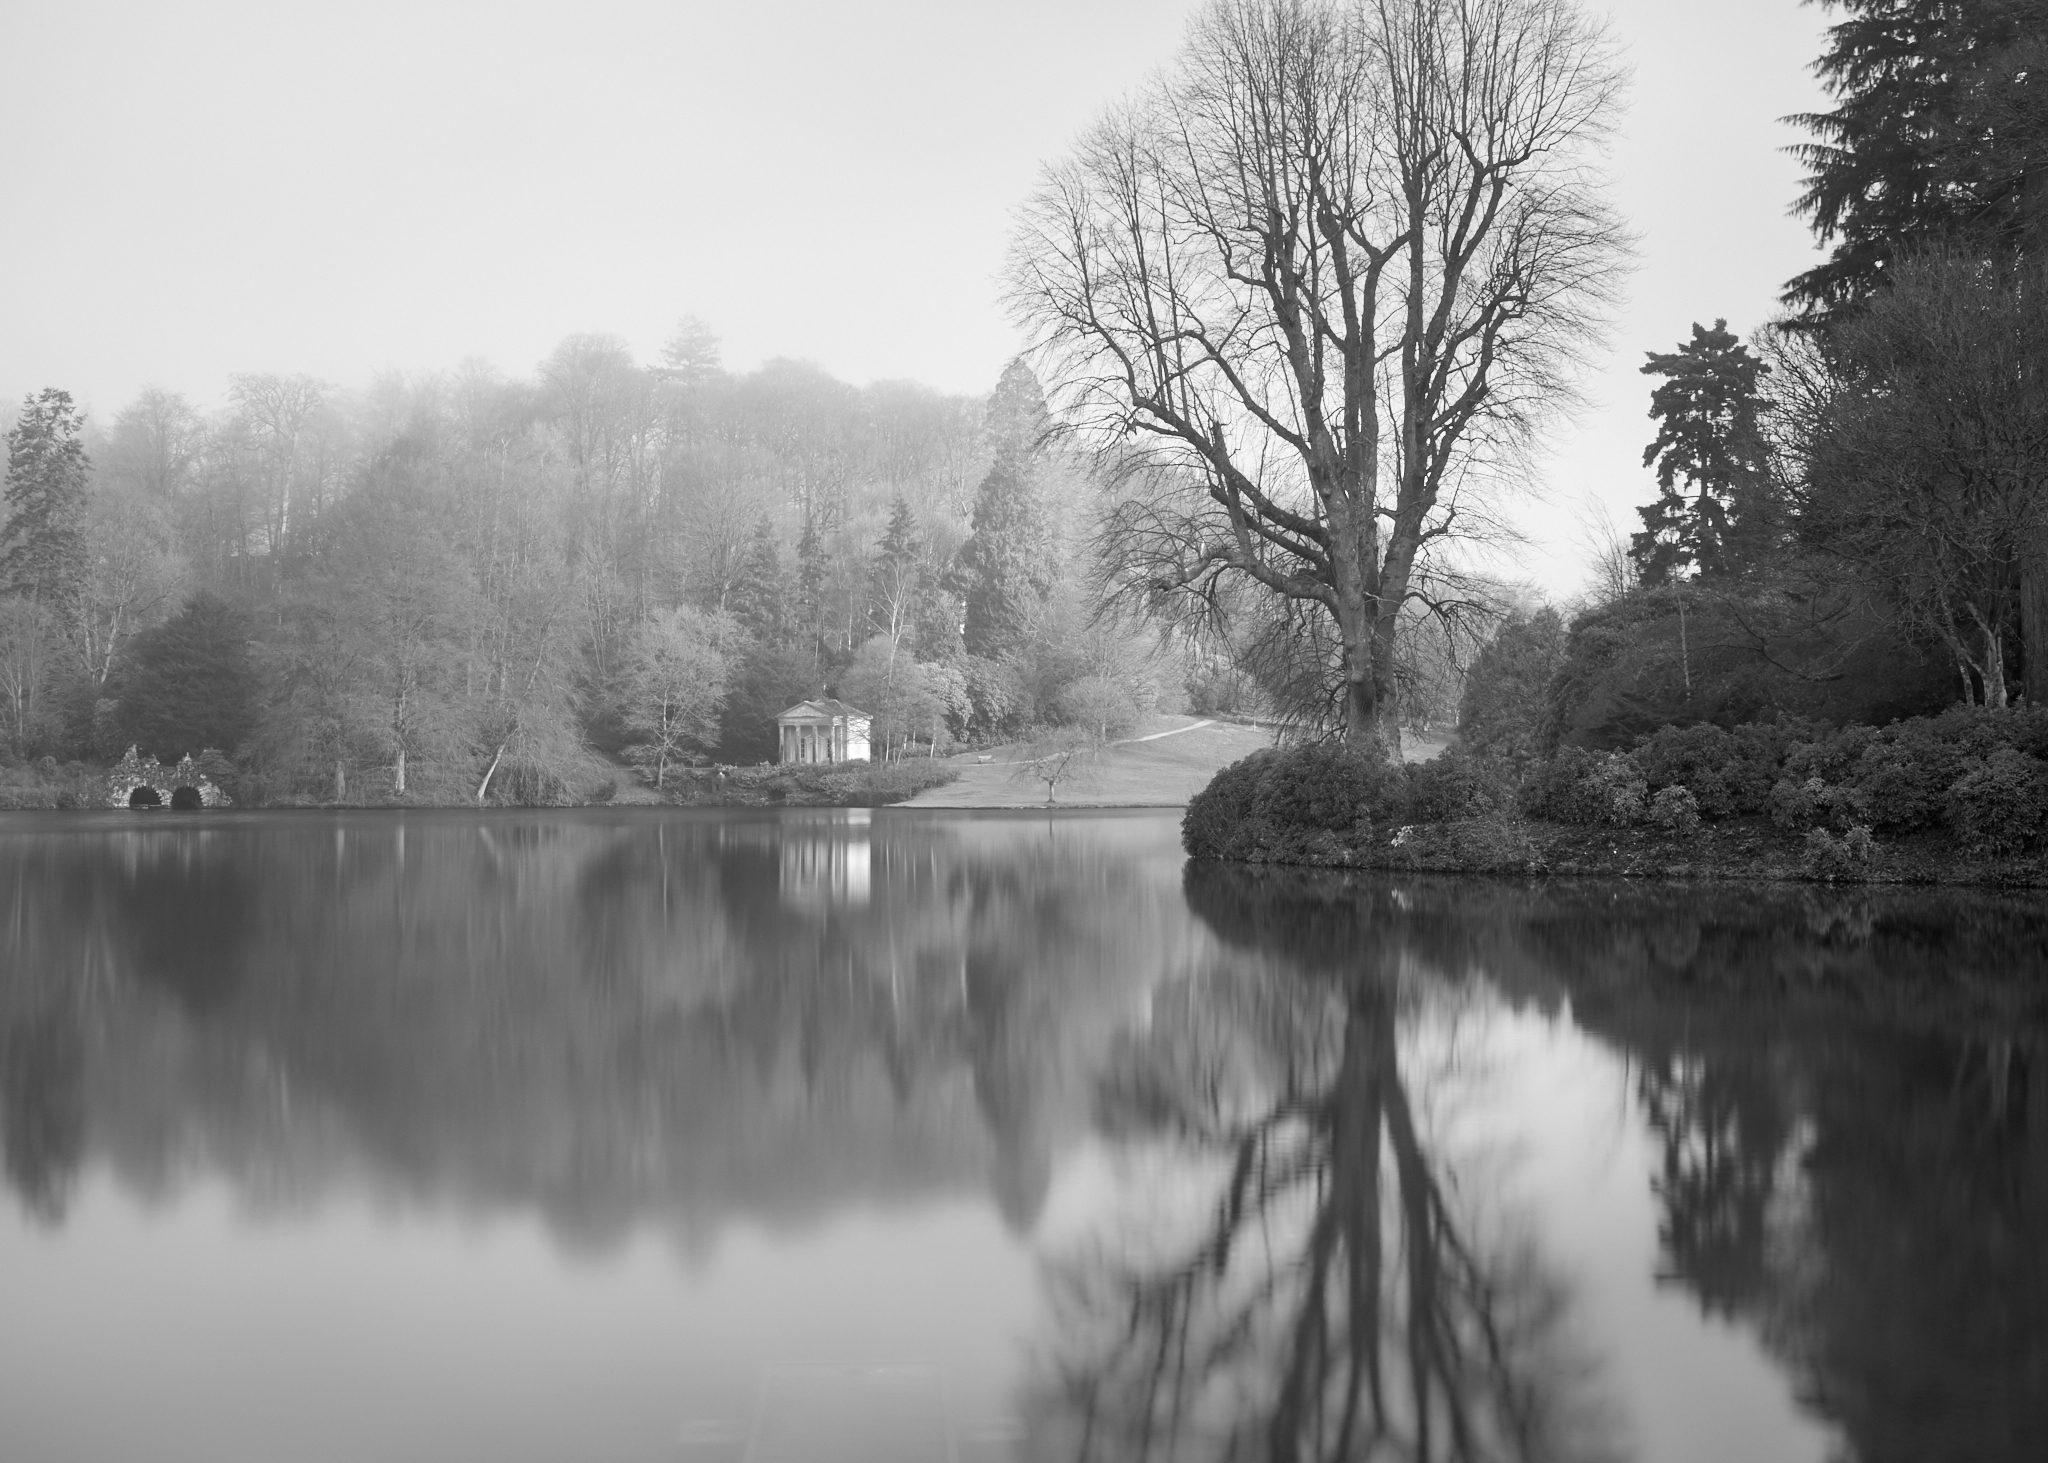 Quiet reflection of the Temple of Flora, at Stourhead Gardens, in Wiltshire.